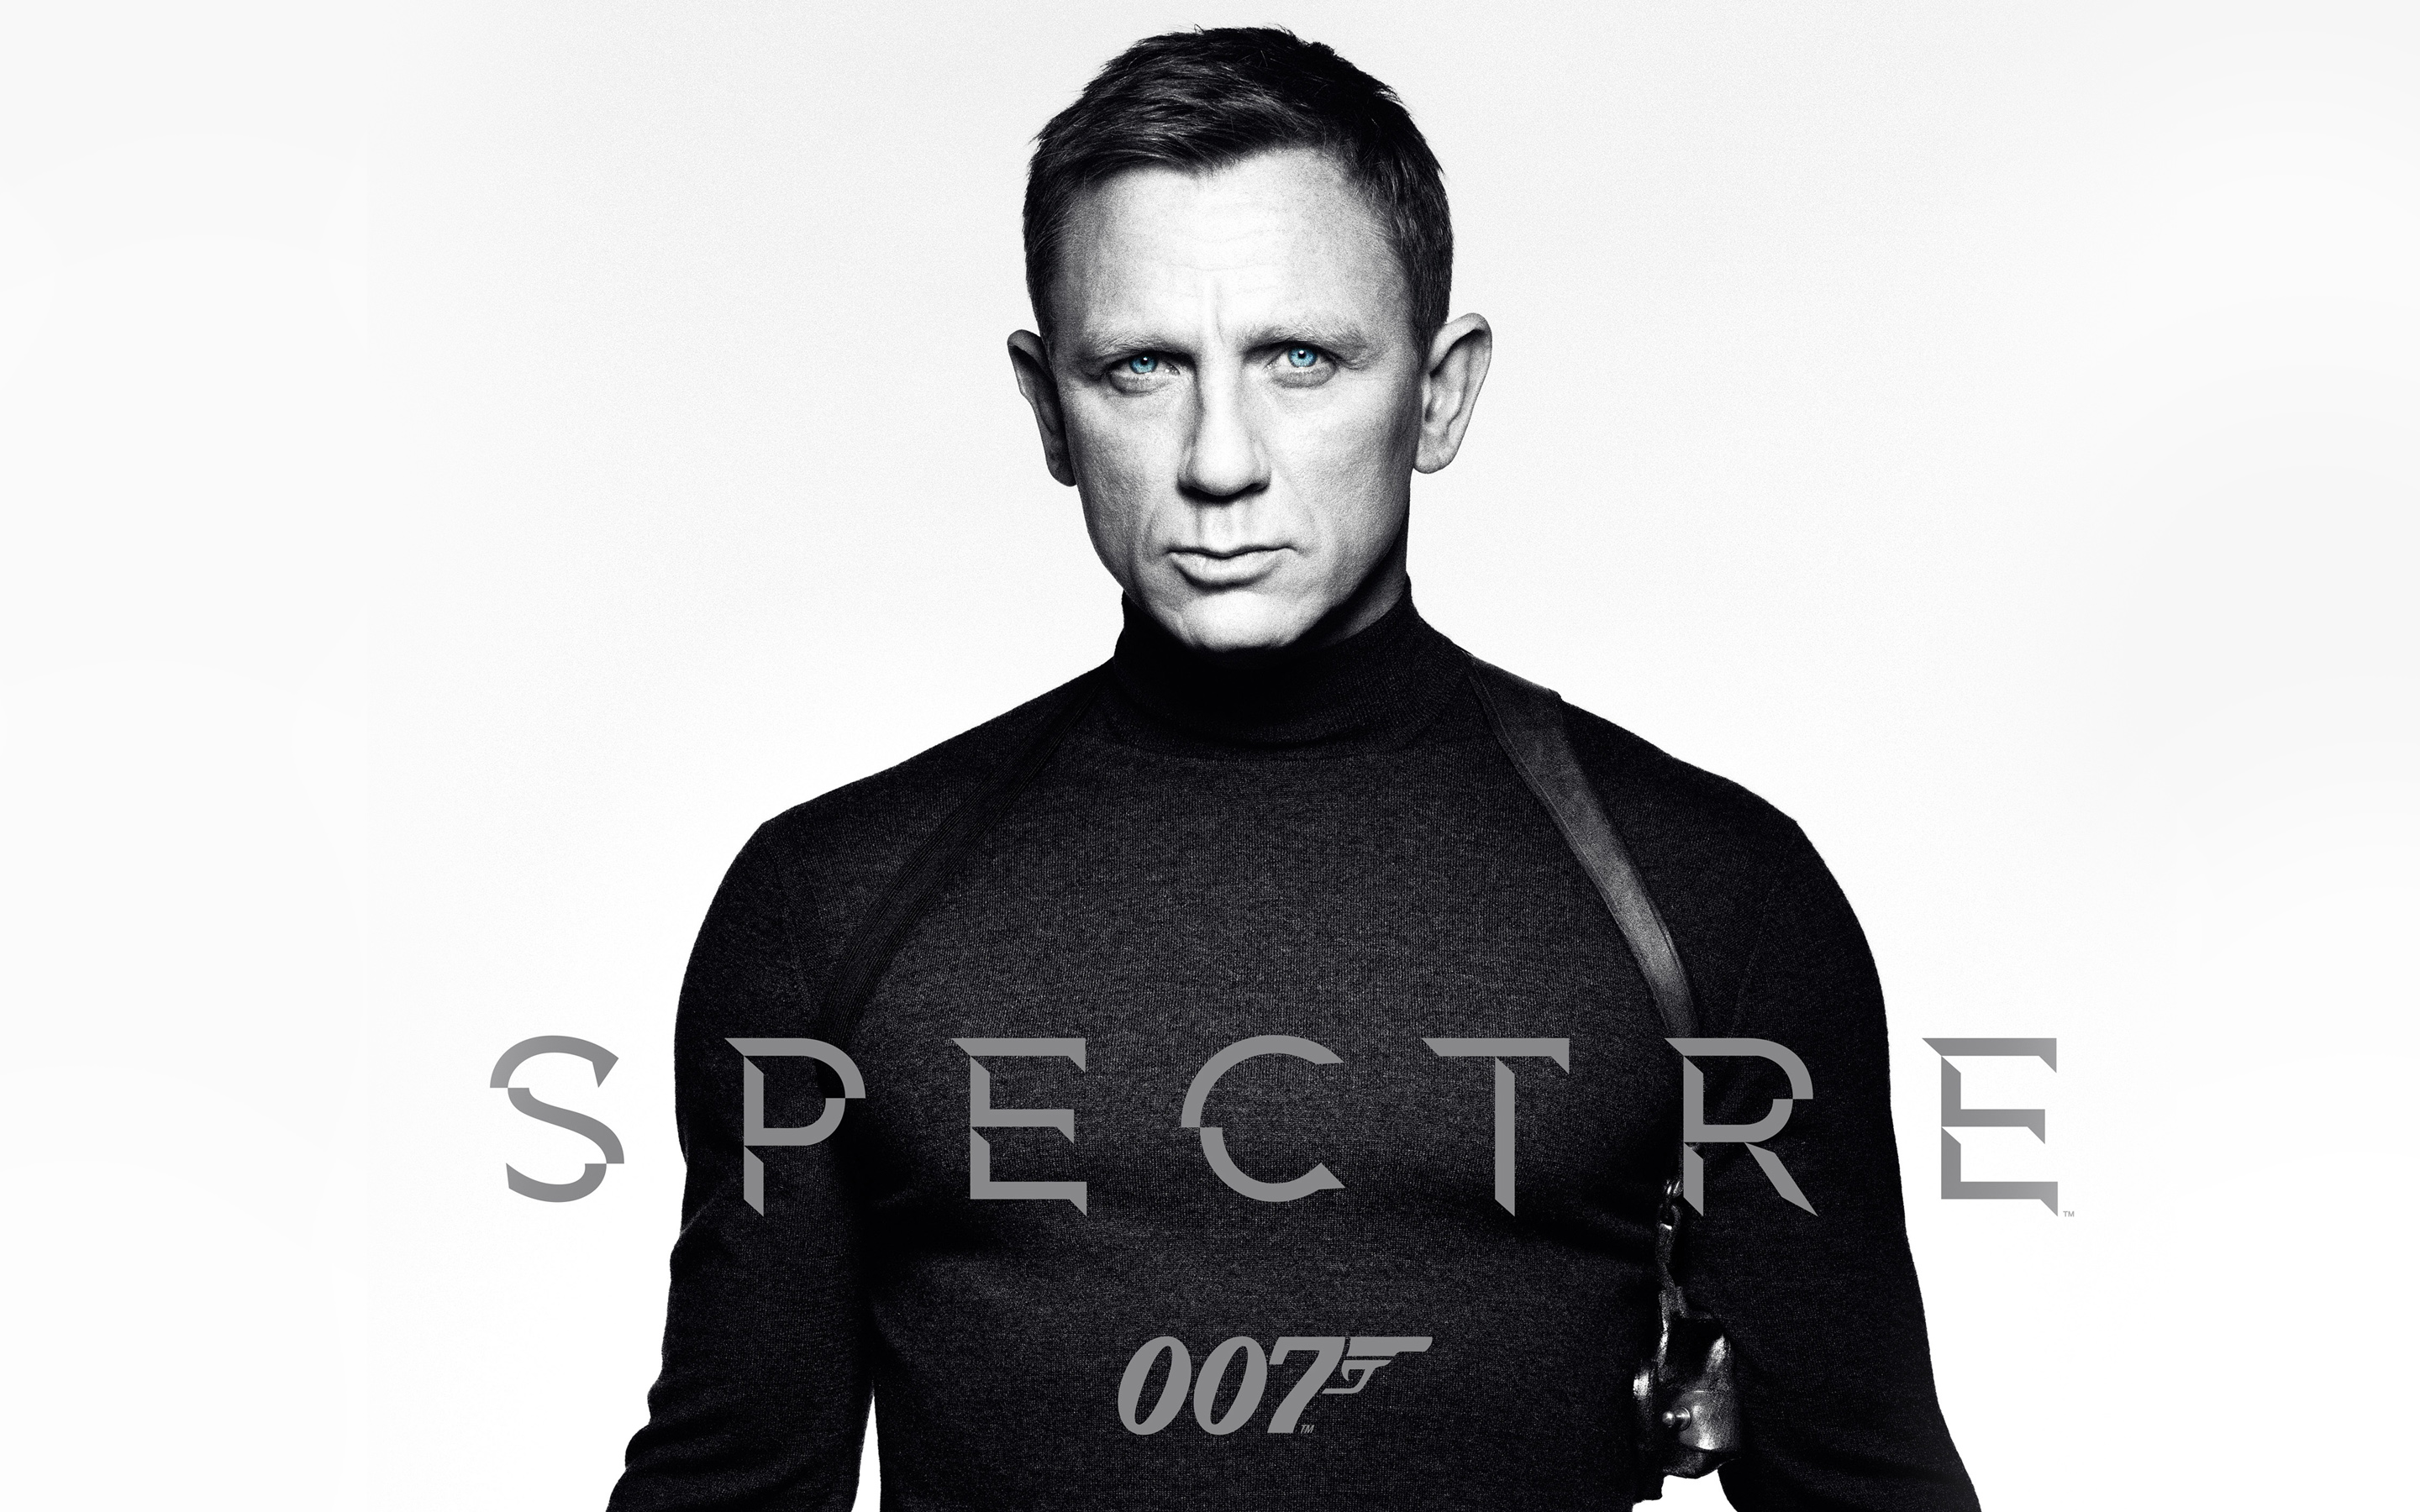 007 Spectre wallpaper 1